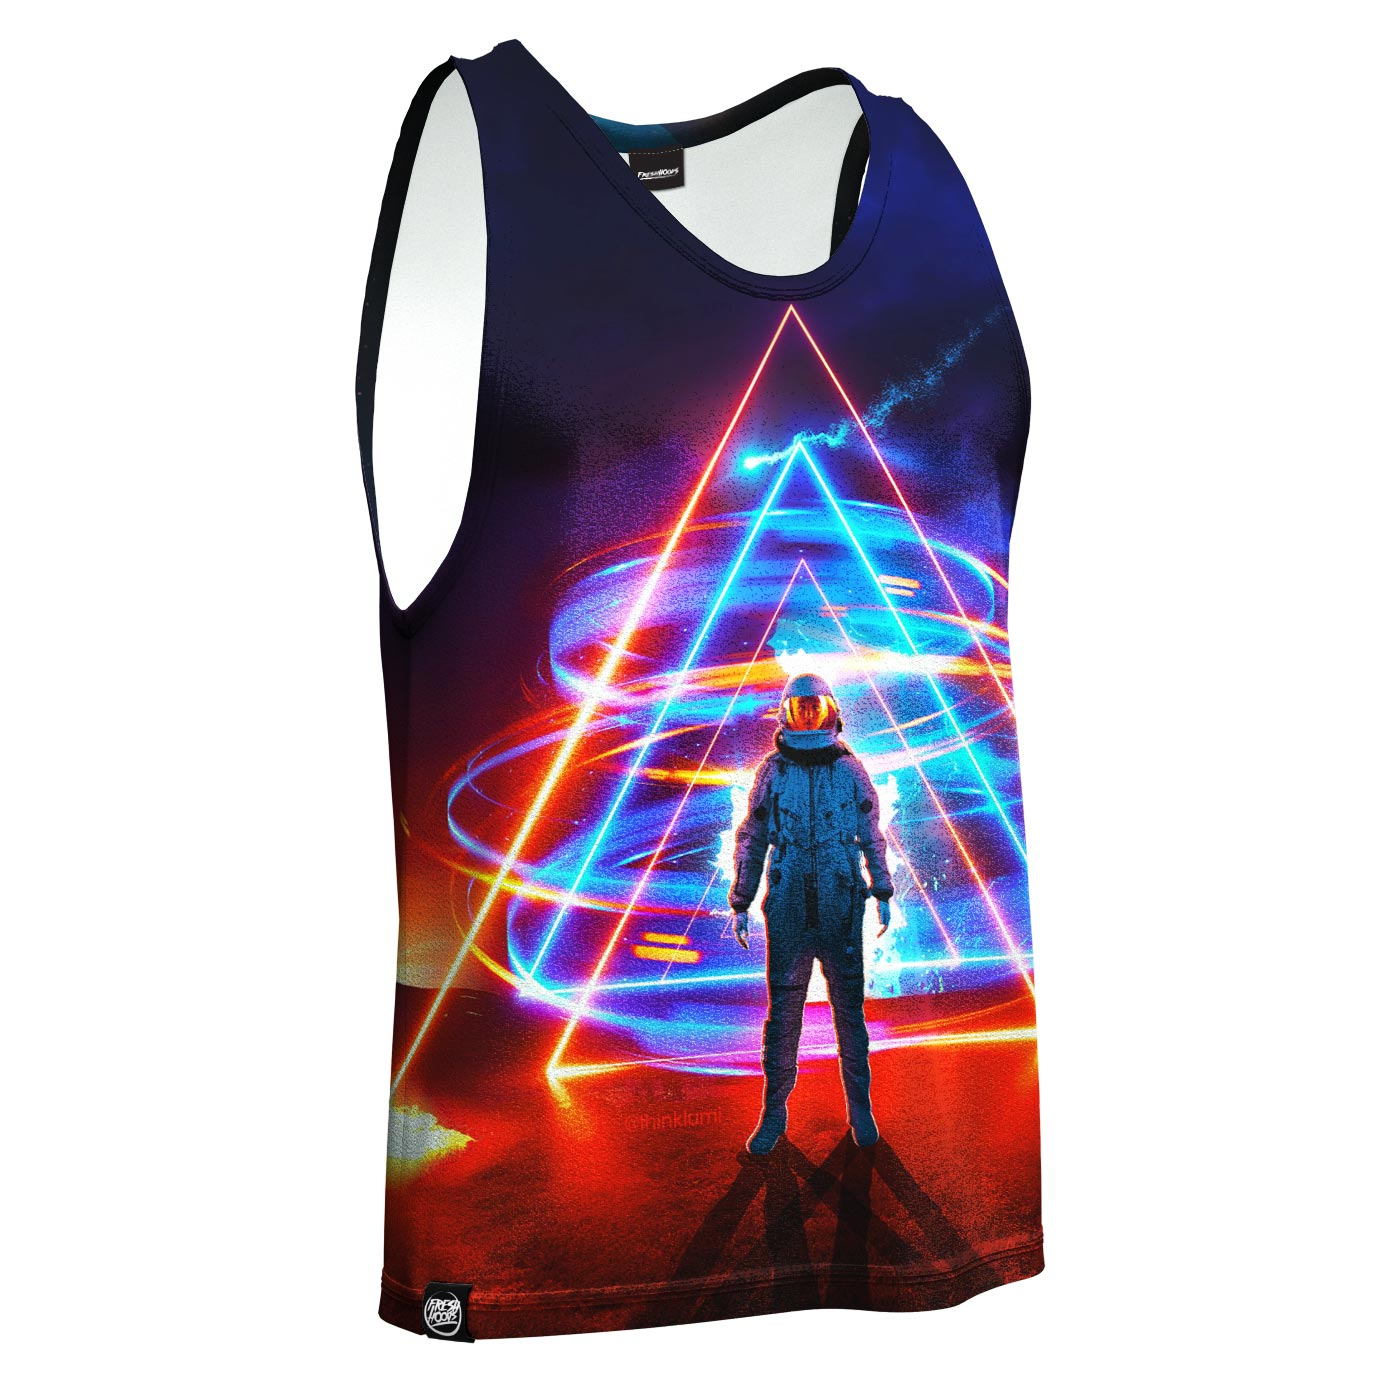 Awe and Wonder Tank Top